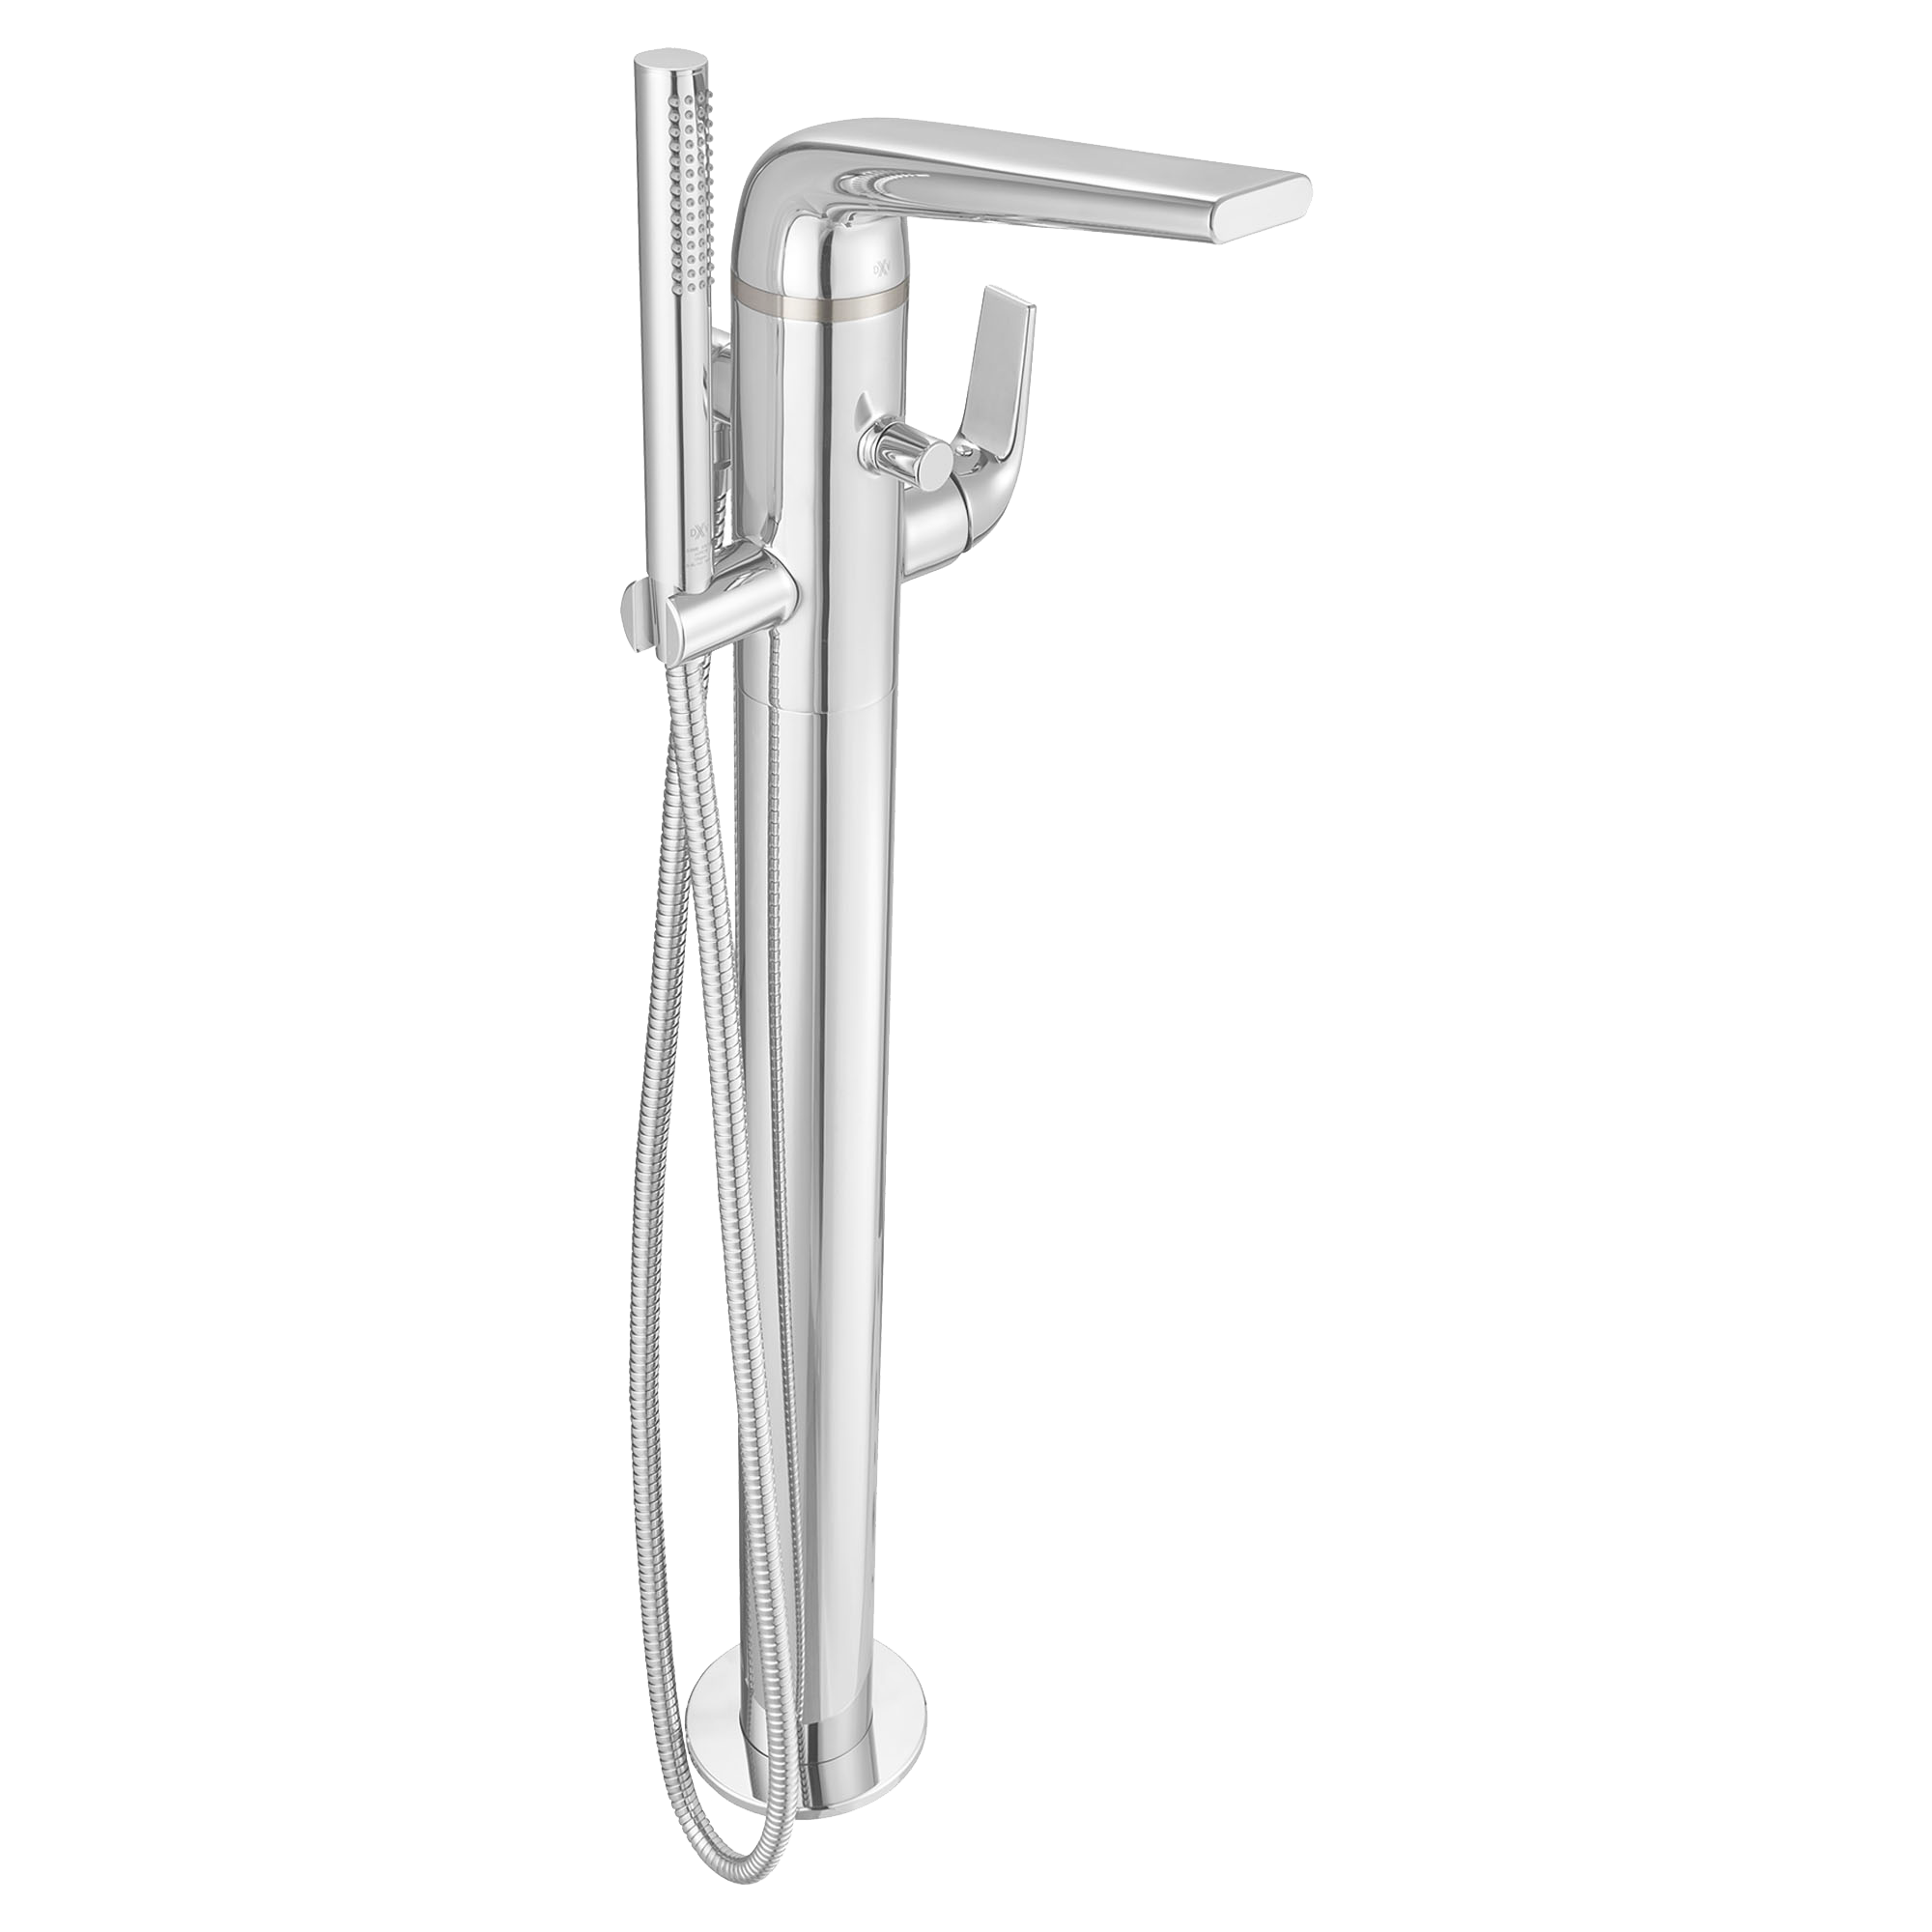 single mount nickel brass floors polished on adds floor this hand with freestanding smooth hardware shower tub and solid silhouette your faucet a handle in made benkei bathroom of arched spout gooseneck control graceful